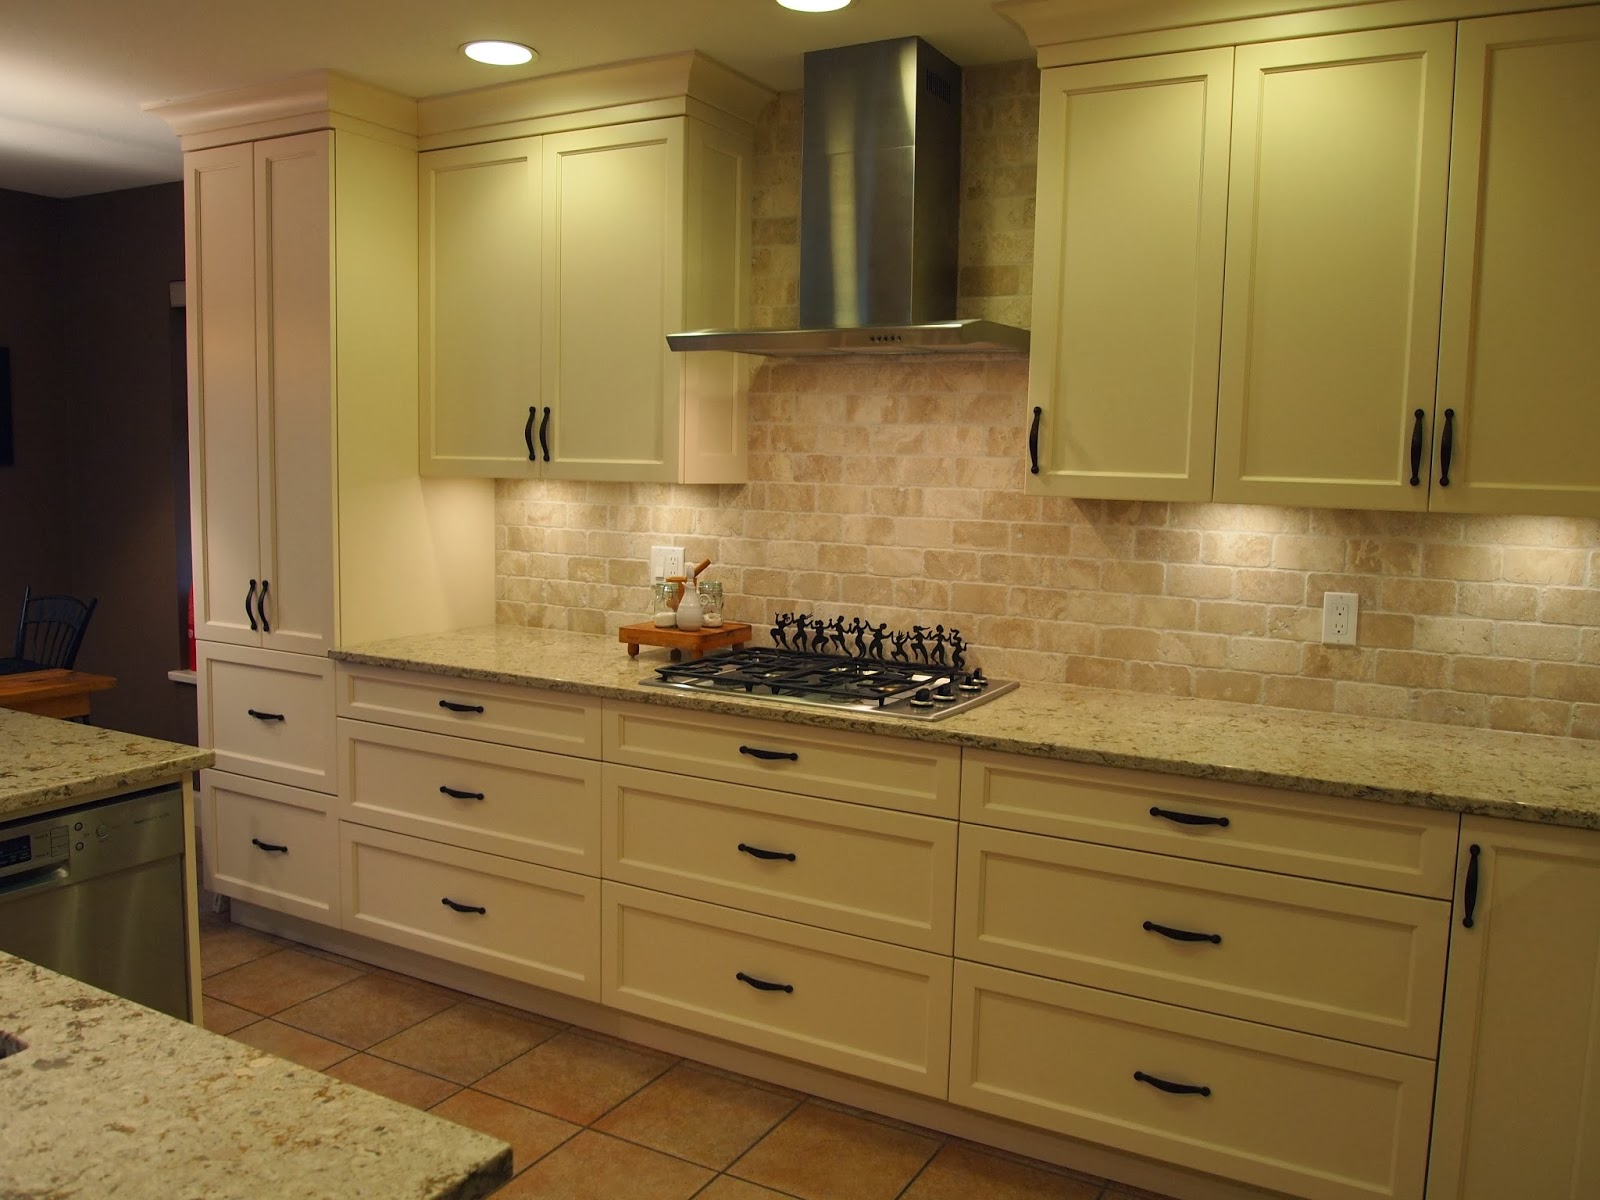 North Vancouver West Vancouver And Vancouver Kitchen Bathroom And Home Renovations North